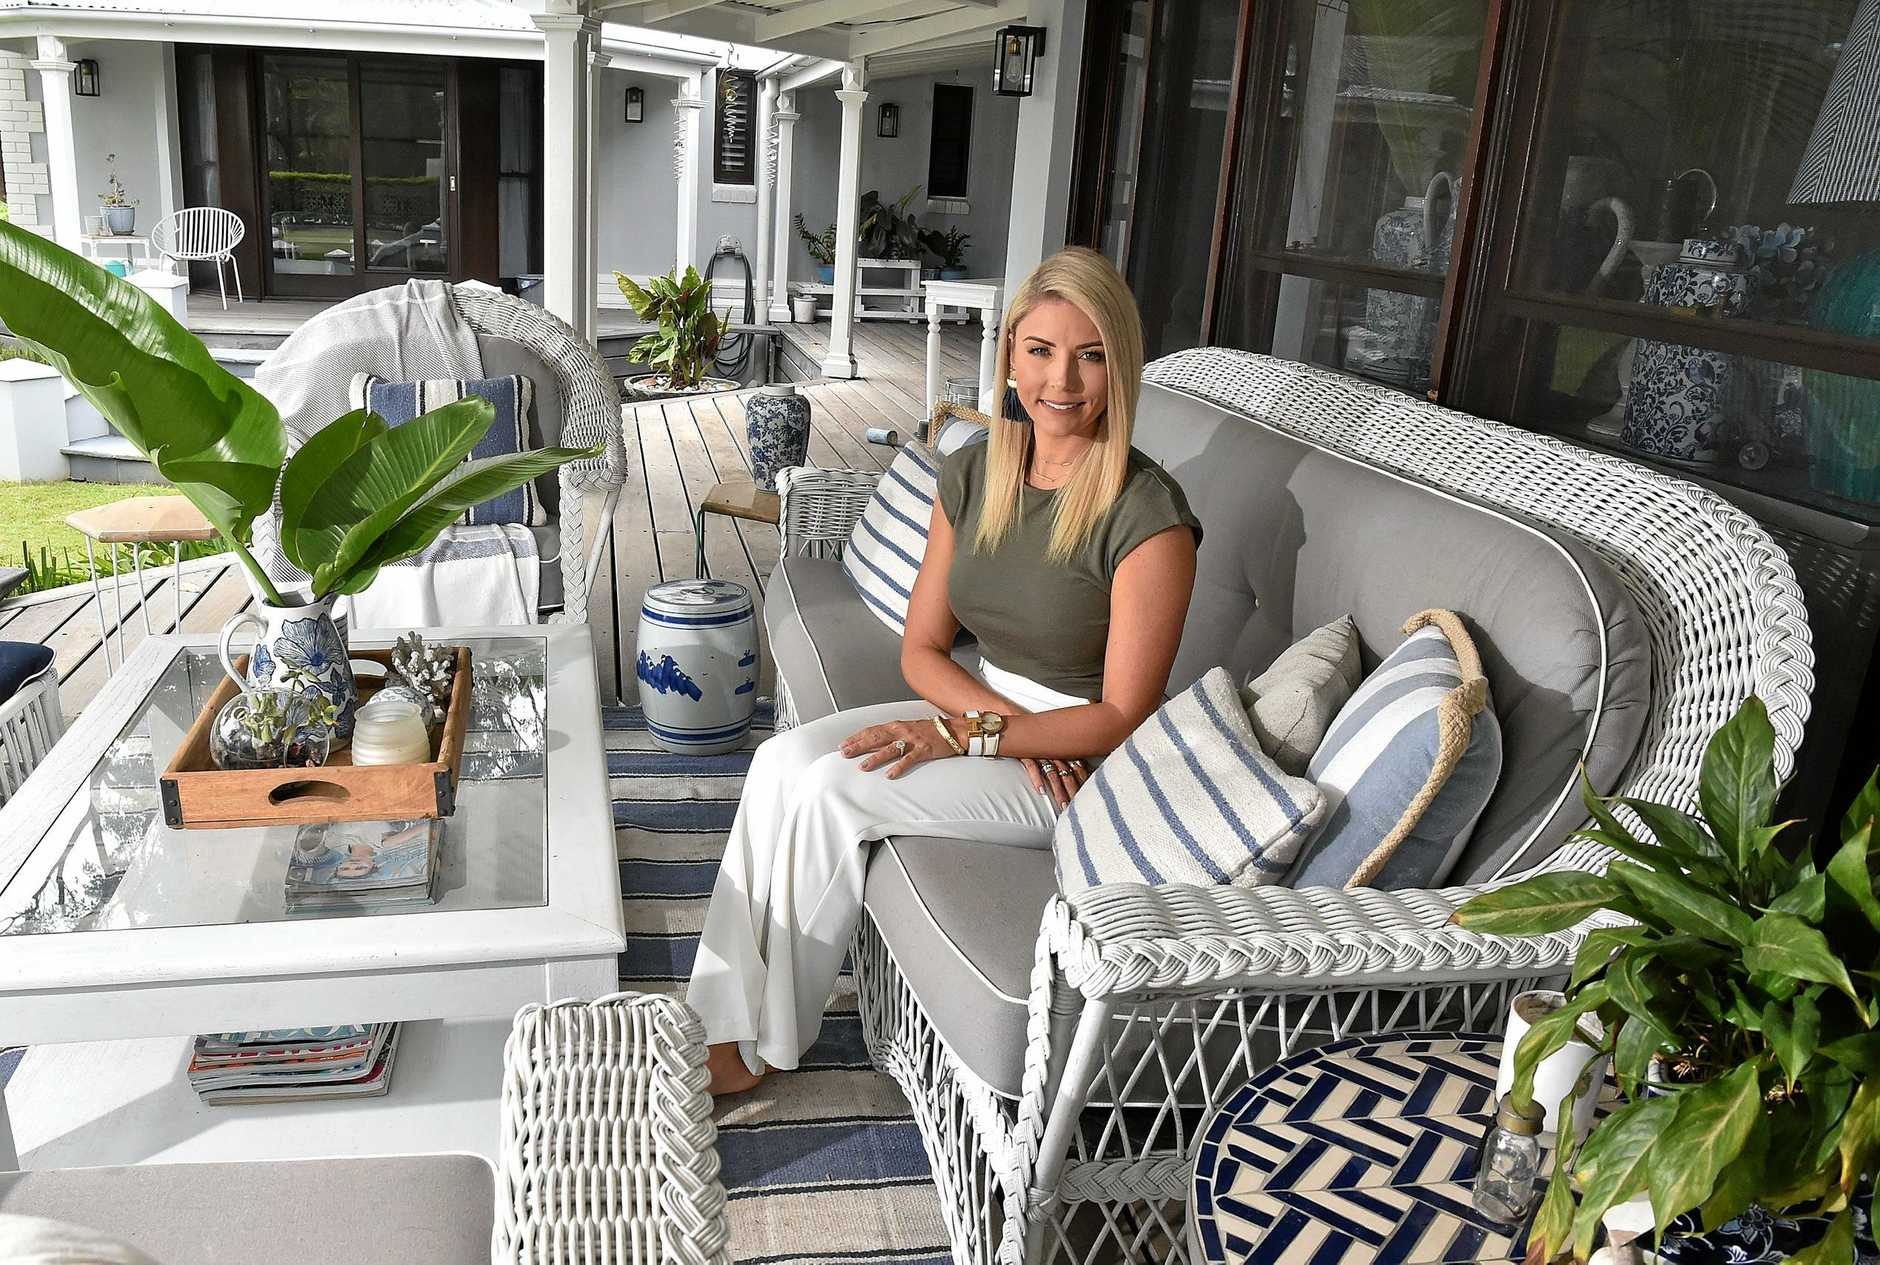 Interior designer Danni Morrison coverted her home inspired by the Hamptons beach house theme.